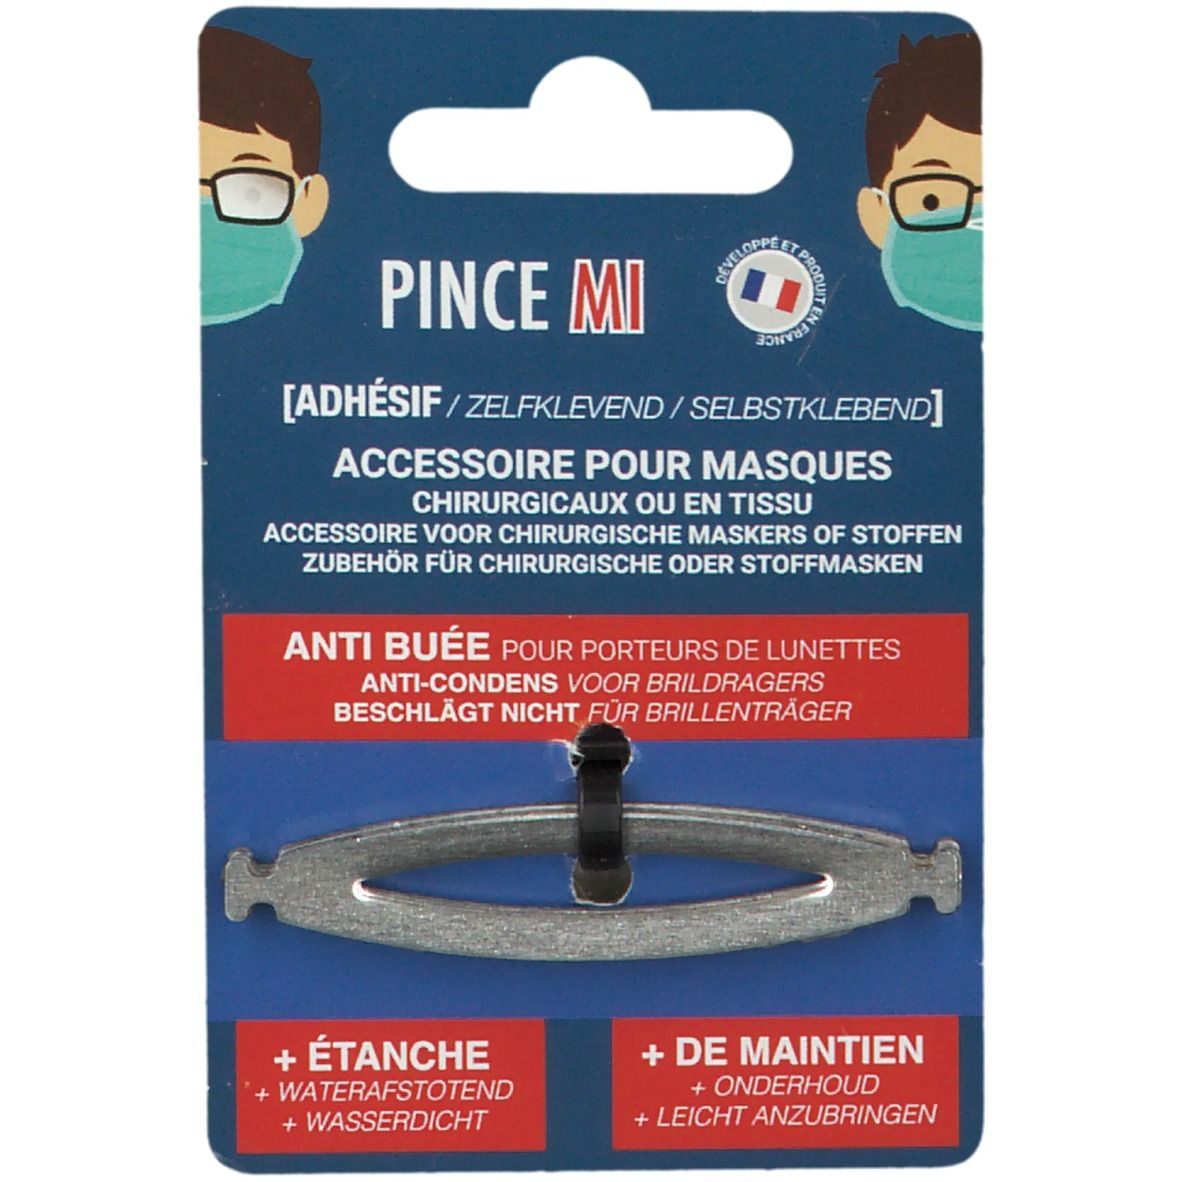 Image of Pince MI Adhesif pour masques